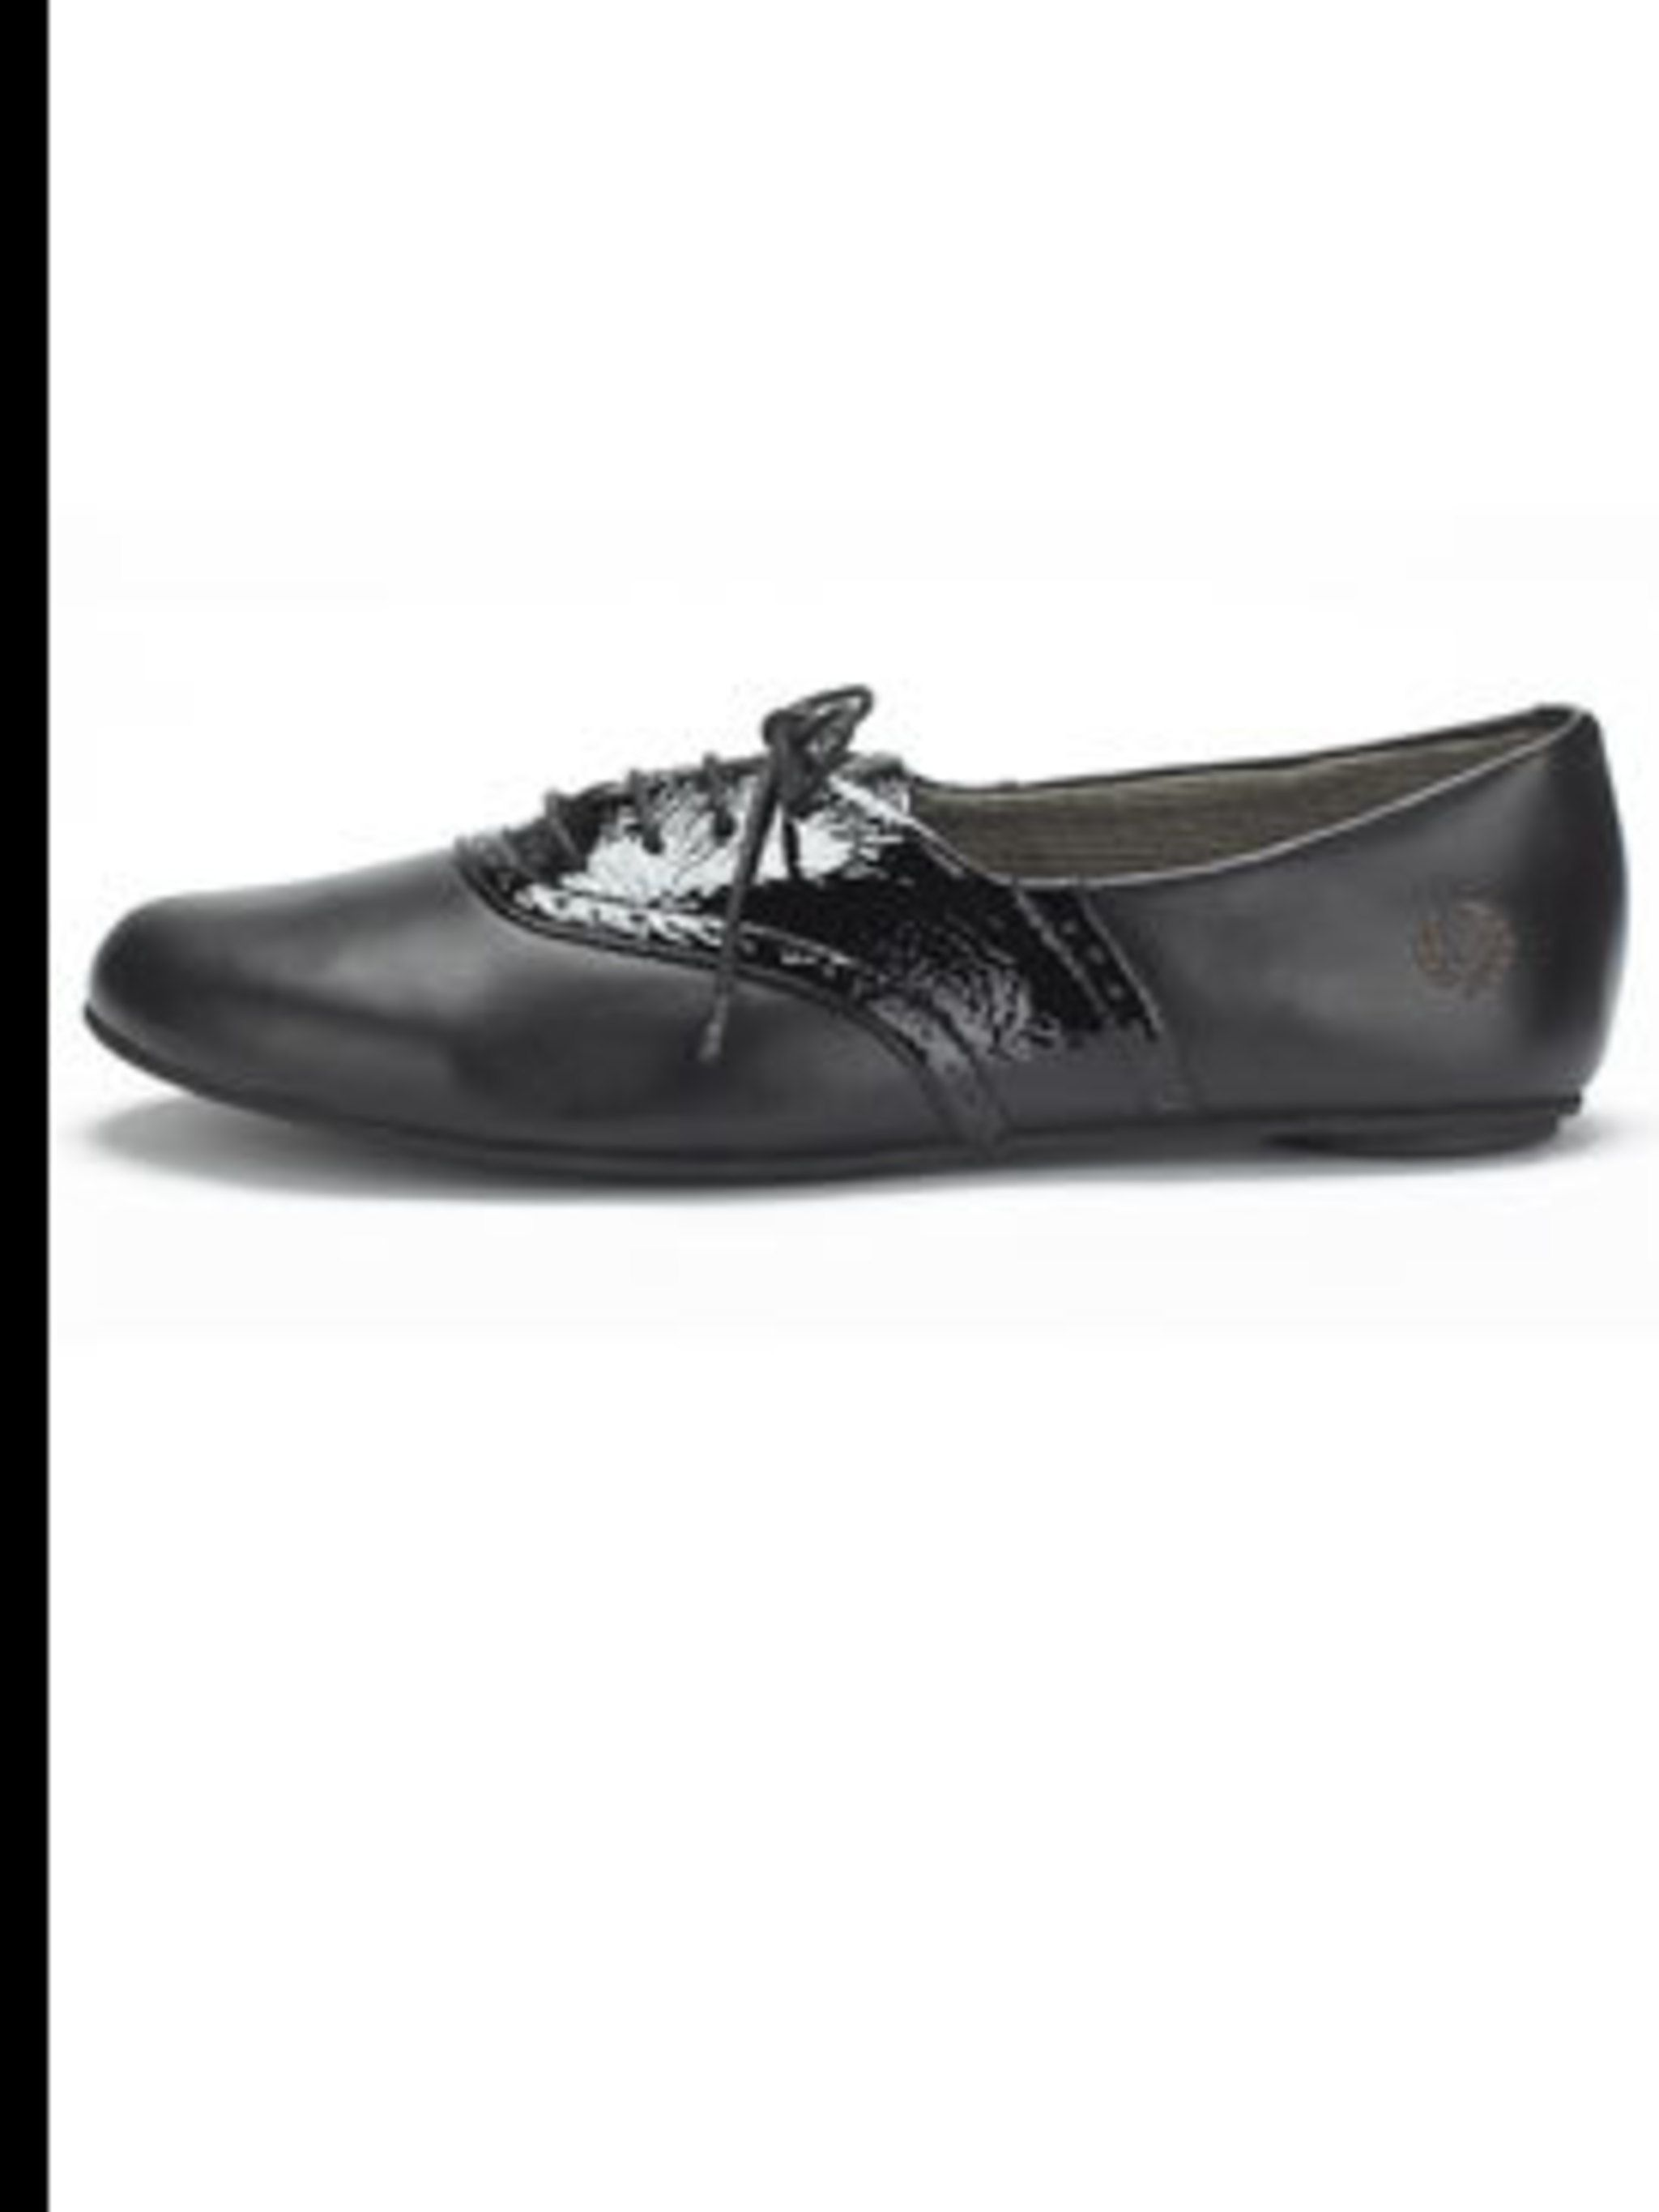 "<p>Black patent brogues, £60, by Fred Perry at <a href=""http://www.office.co.uk/perl/go.pl/home.html"">Office</a></p>"